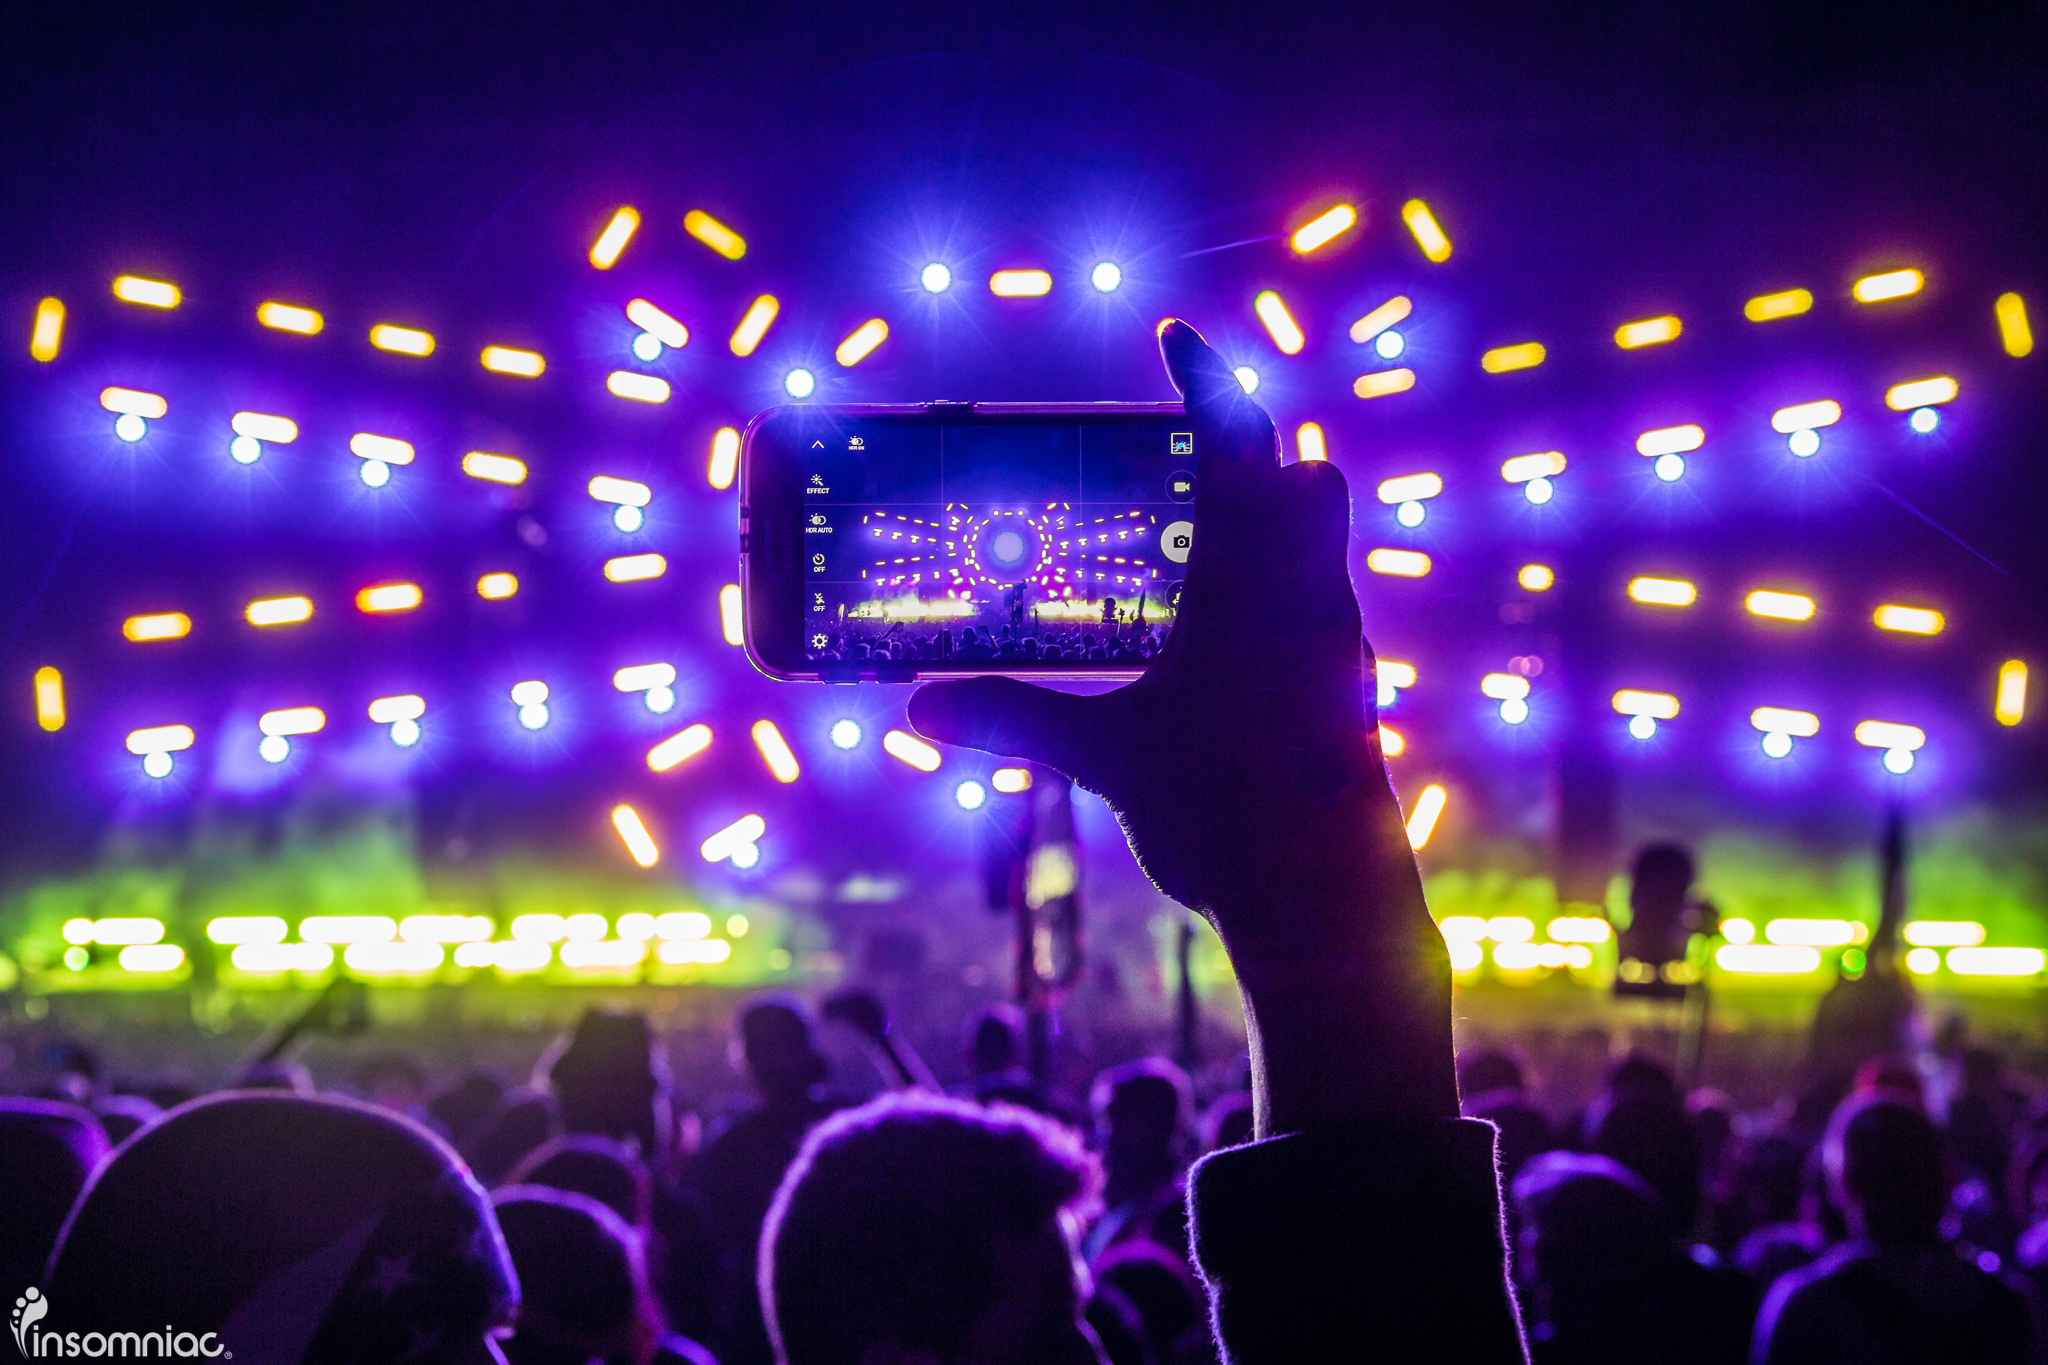 nocturnal_2015_iwally_alivecoverage-23.jpg